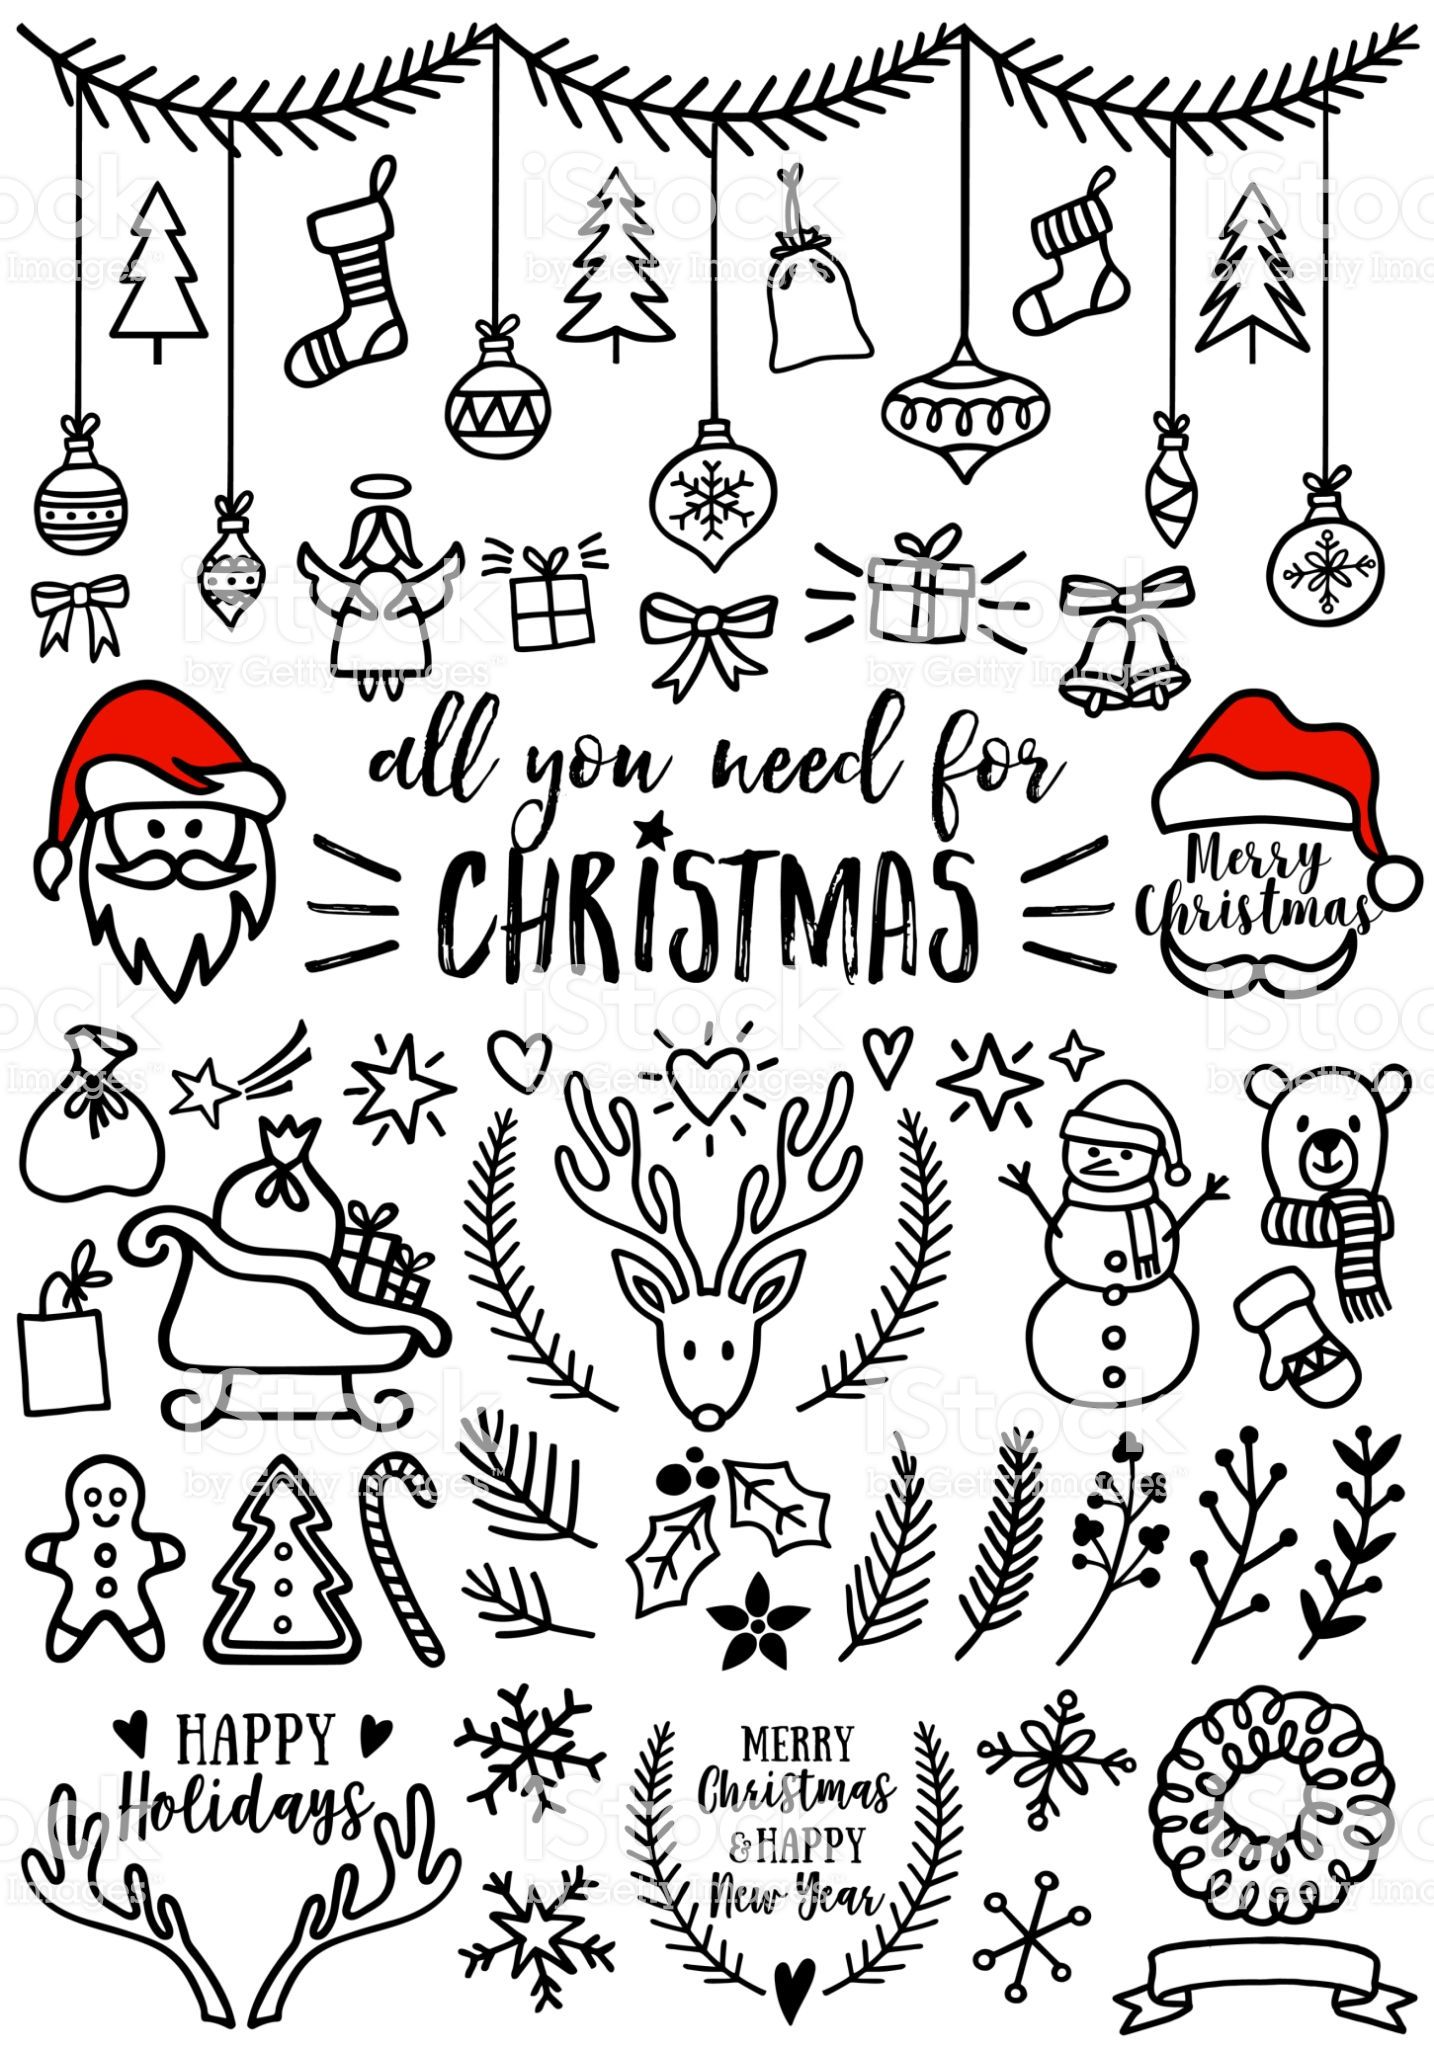 Hand Drawn Christmas Doodles For Cards Banners Set Of